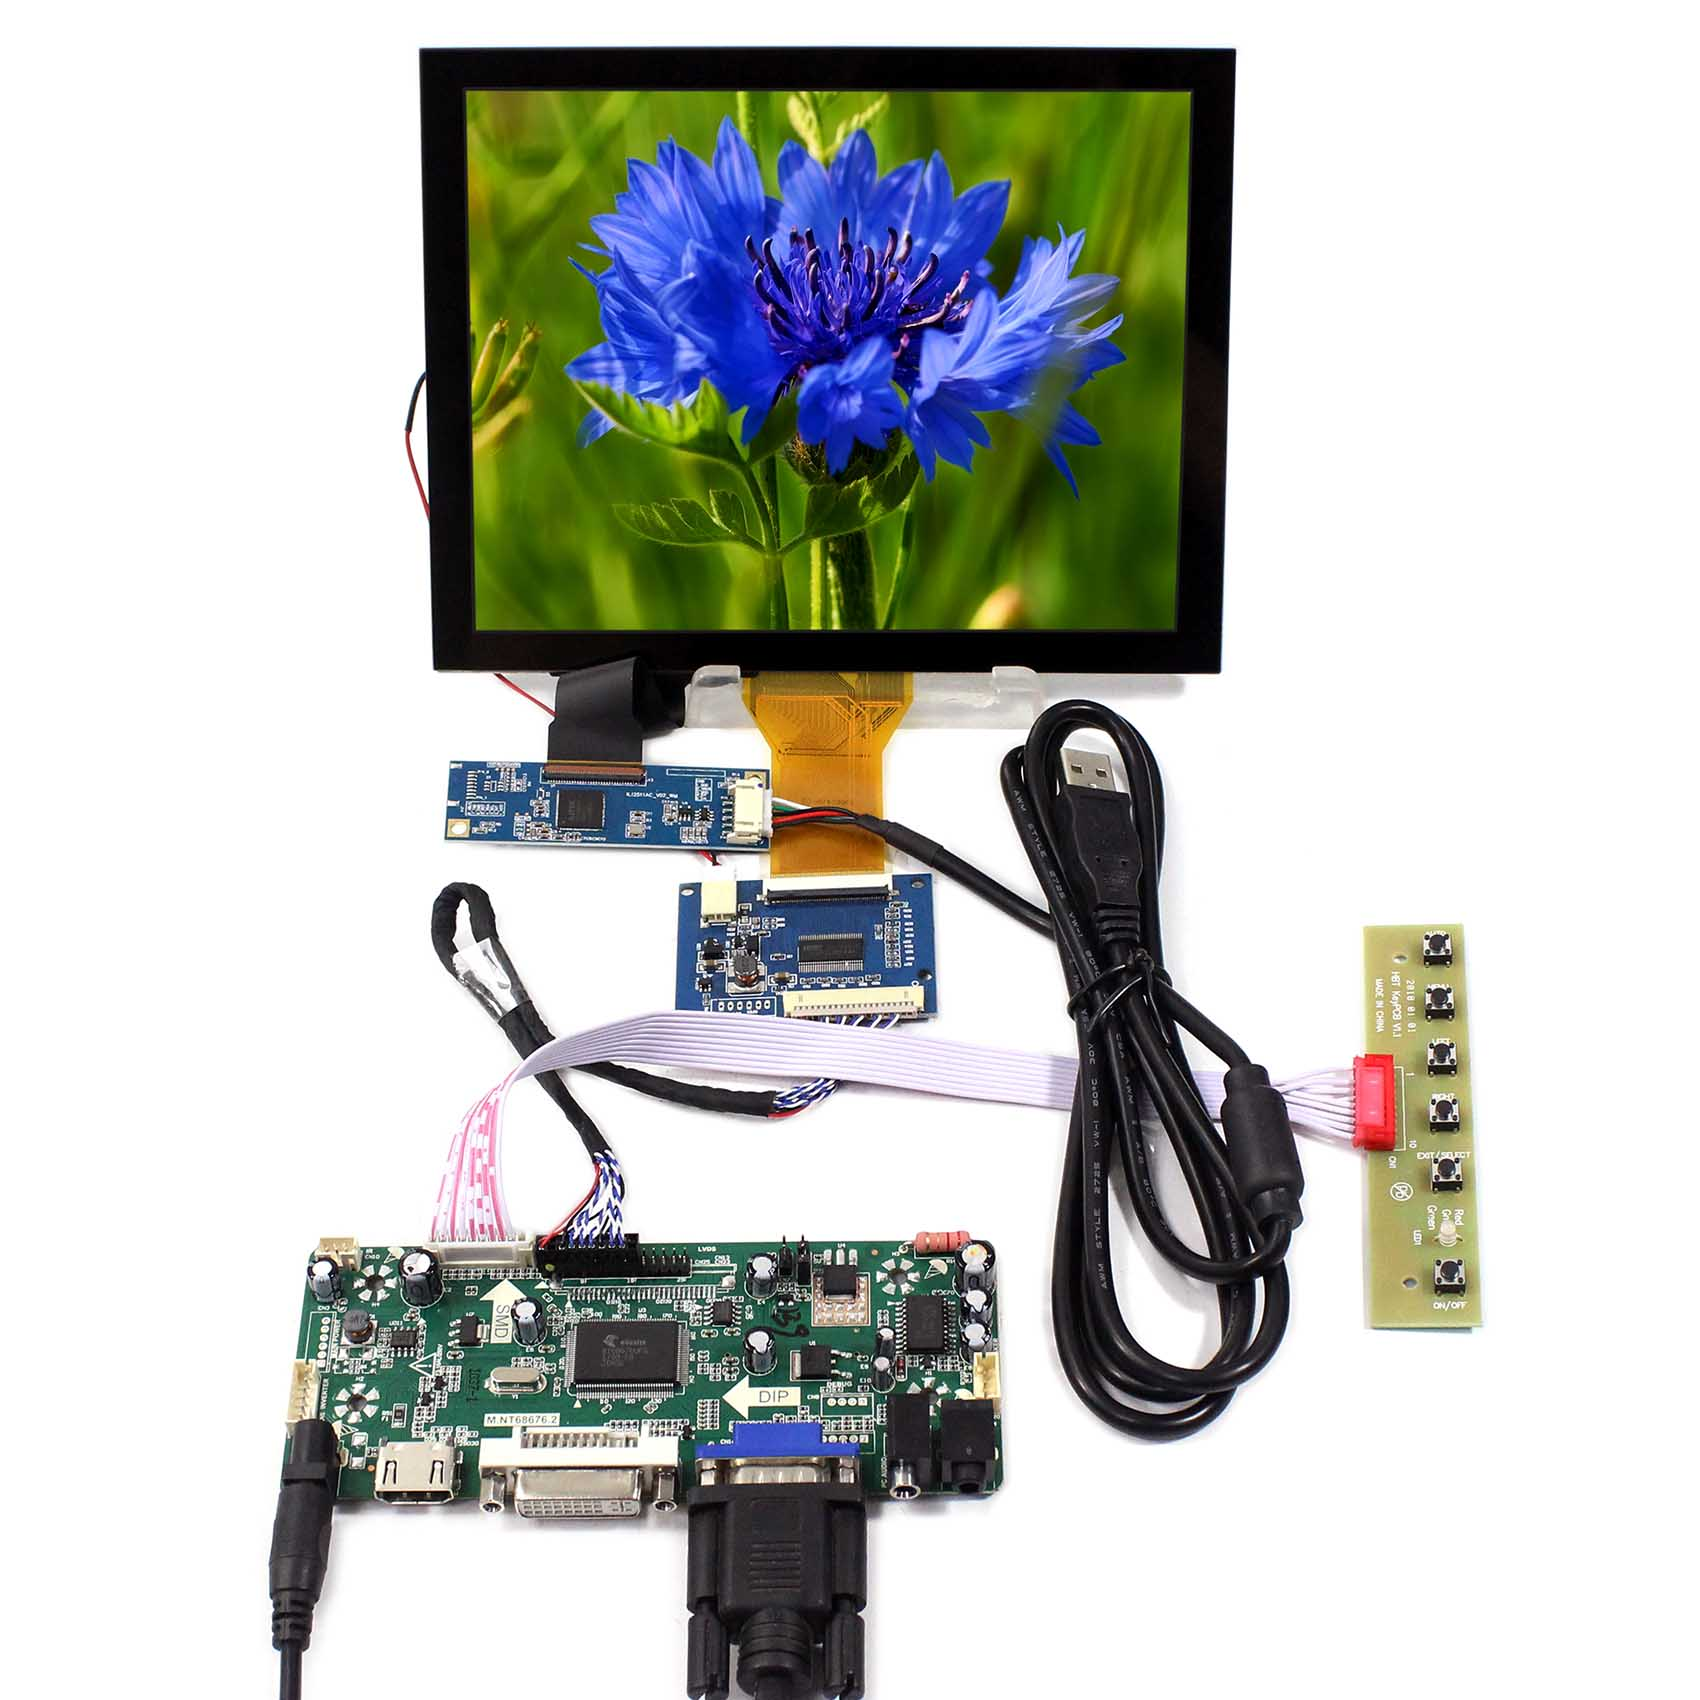 8inch EJ080NA-05A 800x600 LCD Screen Capacitive Touch Panel Backlight WLED M.NT68676 HDMI DVI VGA AUDIO LCD Controller Board free shipping vga audio hdmi dvi lcd controller board hdmi dvi for 10 1 inch 1024x600 n101l6 l0a n101l6 l02 wled lvds lcd panel